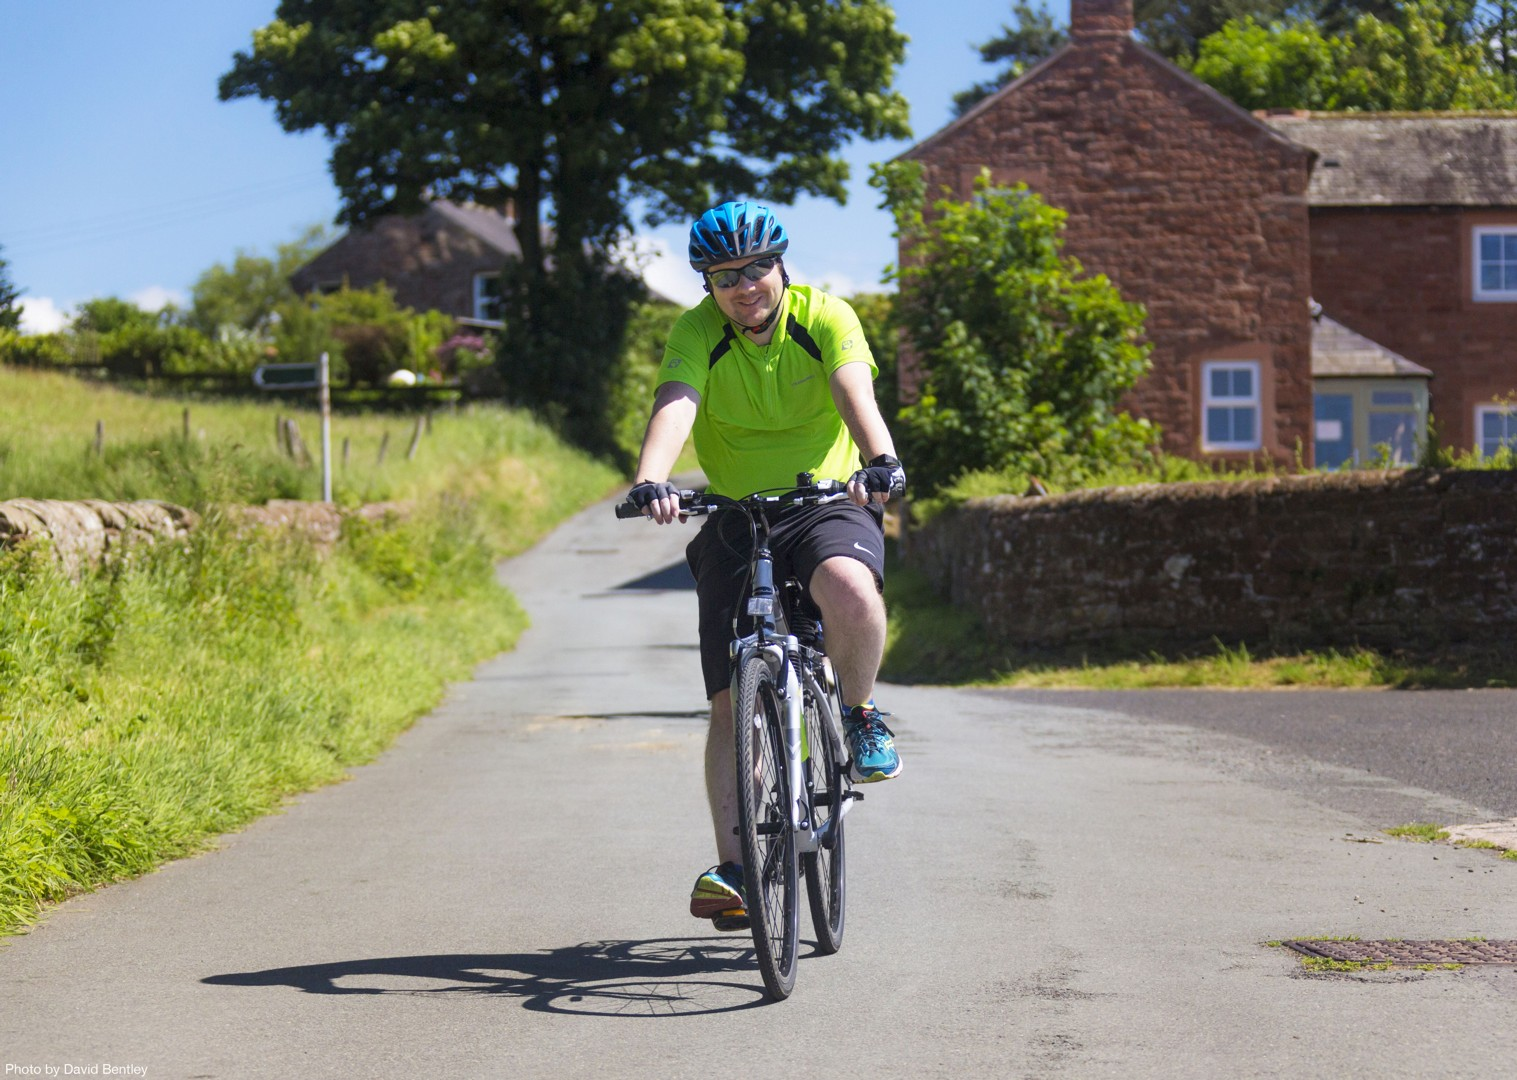 Cycle-Hadrians-Wall-UK-Hadrians-Cycleway-Self-Guided-Leisure-Cycling-Holiday.jpg - UK - Hadrian's Cycleway - 4 Days Cycling - Self-Guided Leisure Cycling Holiday - Leisure Cycling